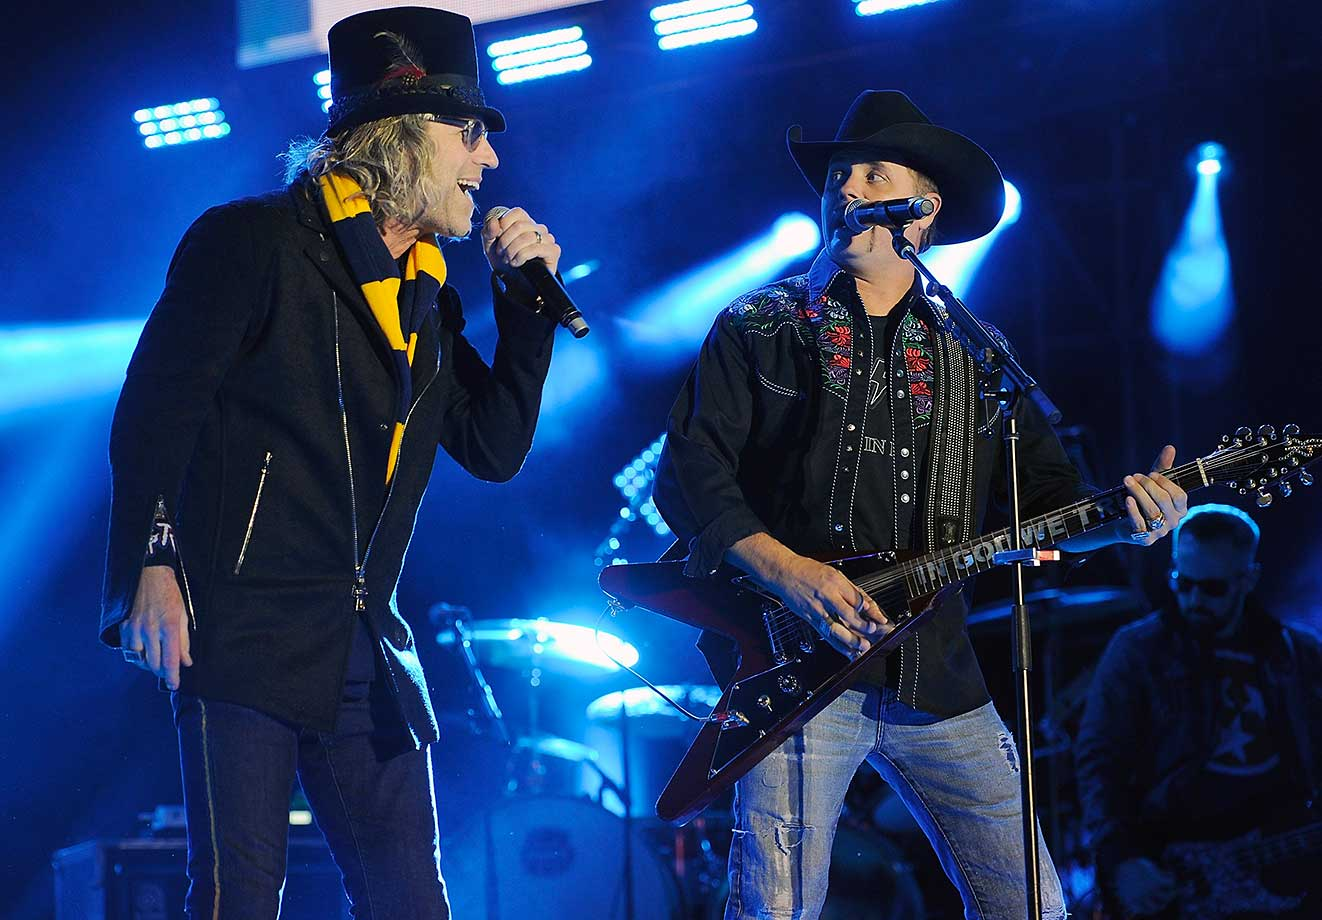 Big Kenny Alphin and John Rich of the band Big and Rich perform at the Bridgestone Winter Park Honda Stage in Nashville as part of the NHL All-Star Week festivities.